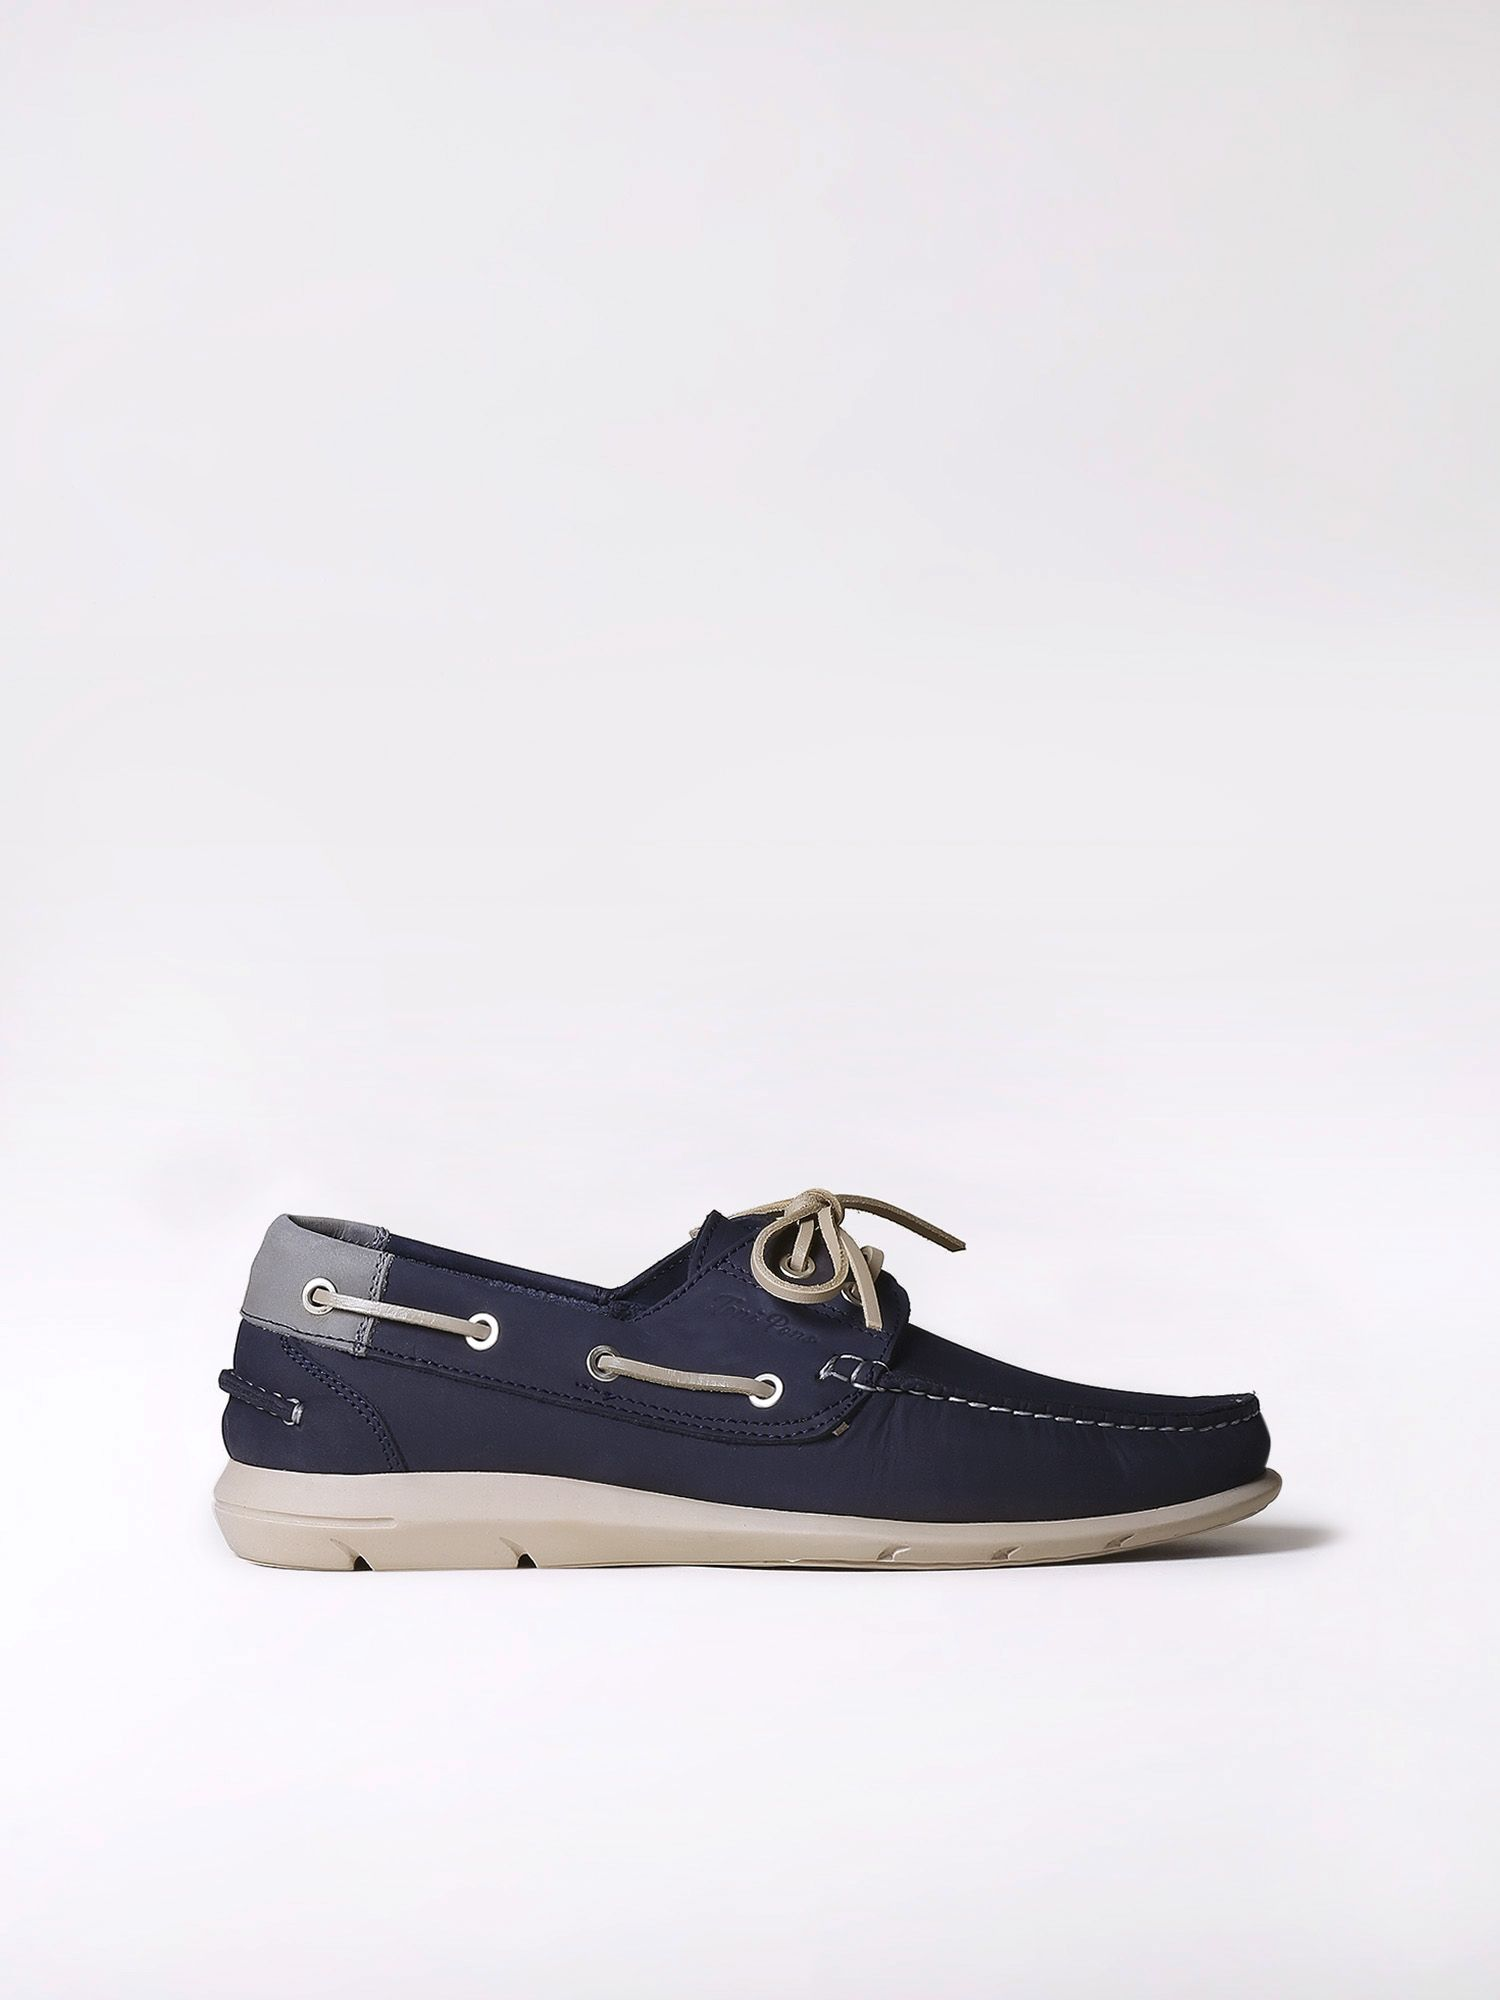 Leather boat shoes - DUC-N